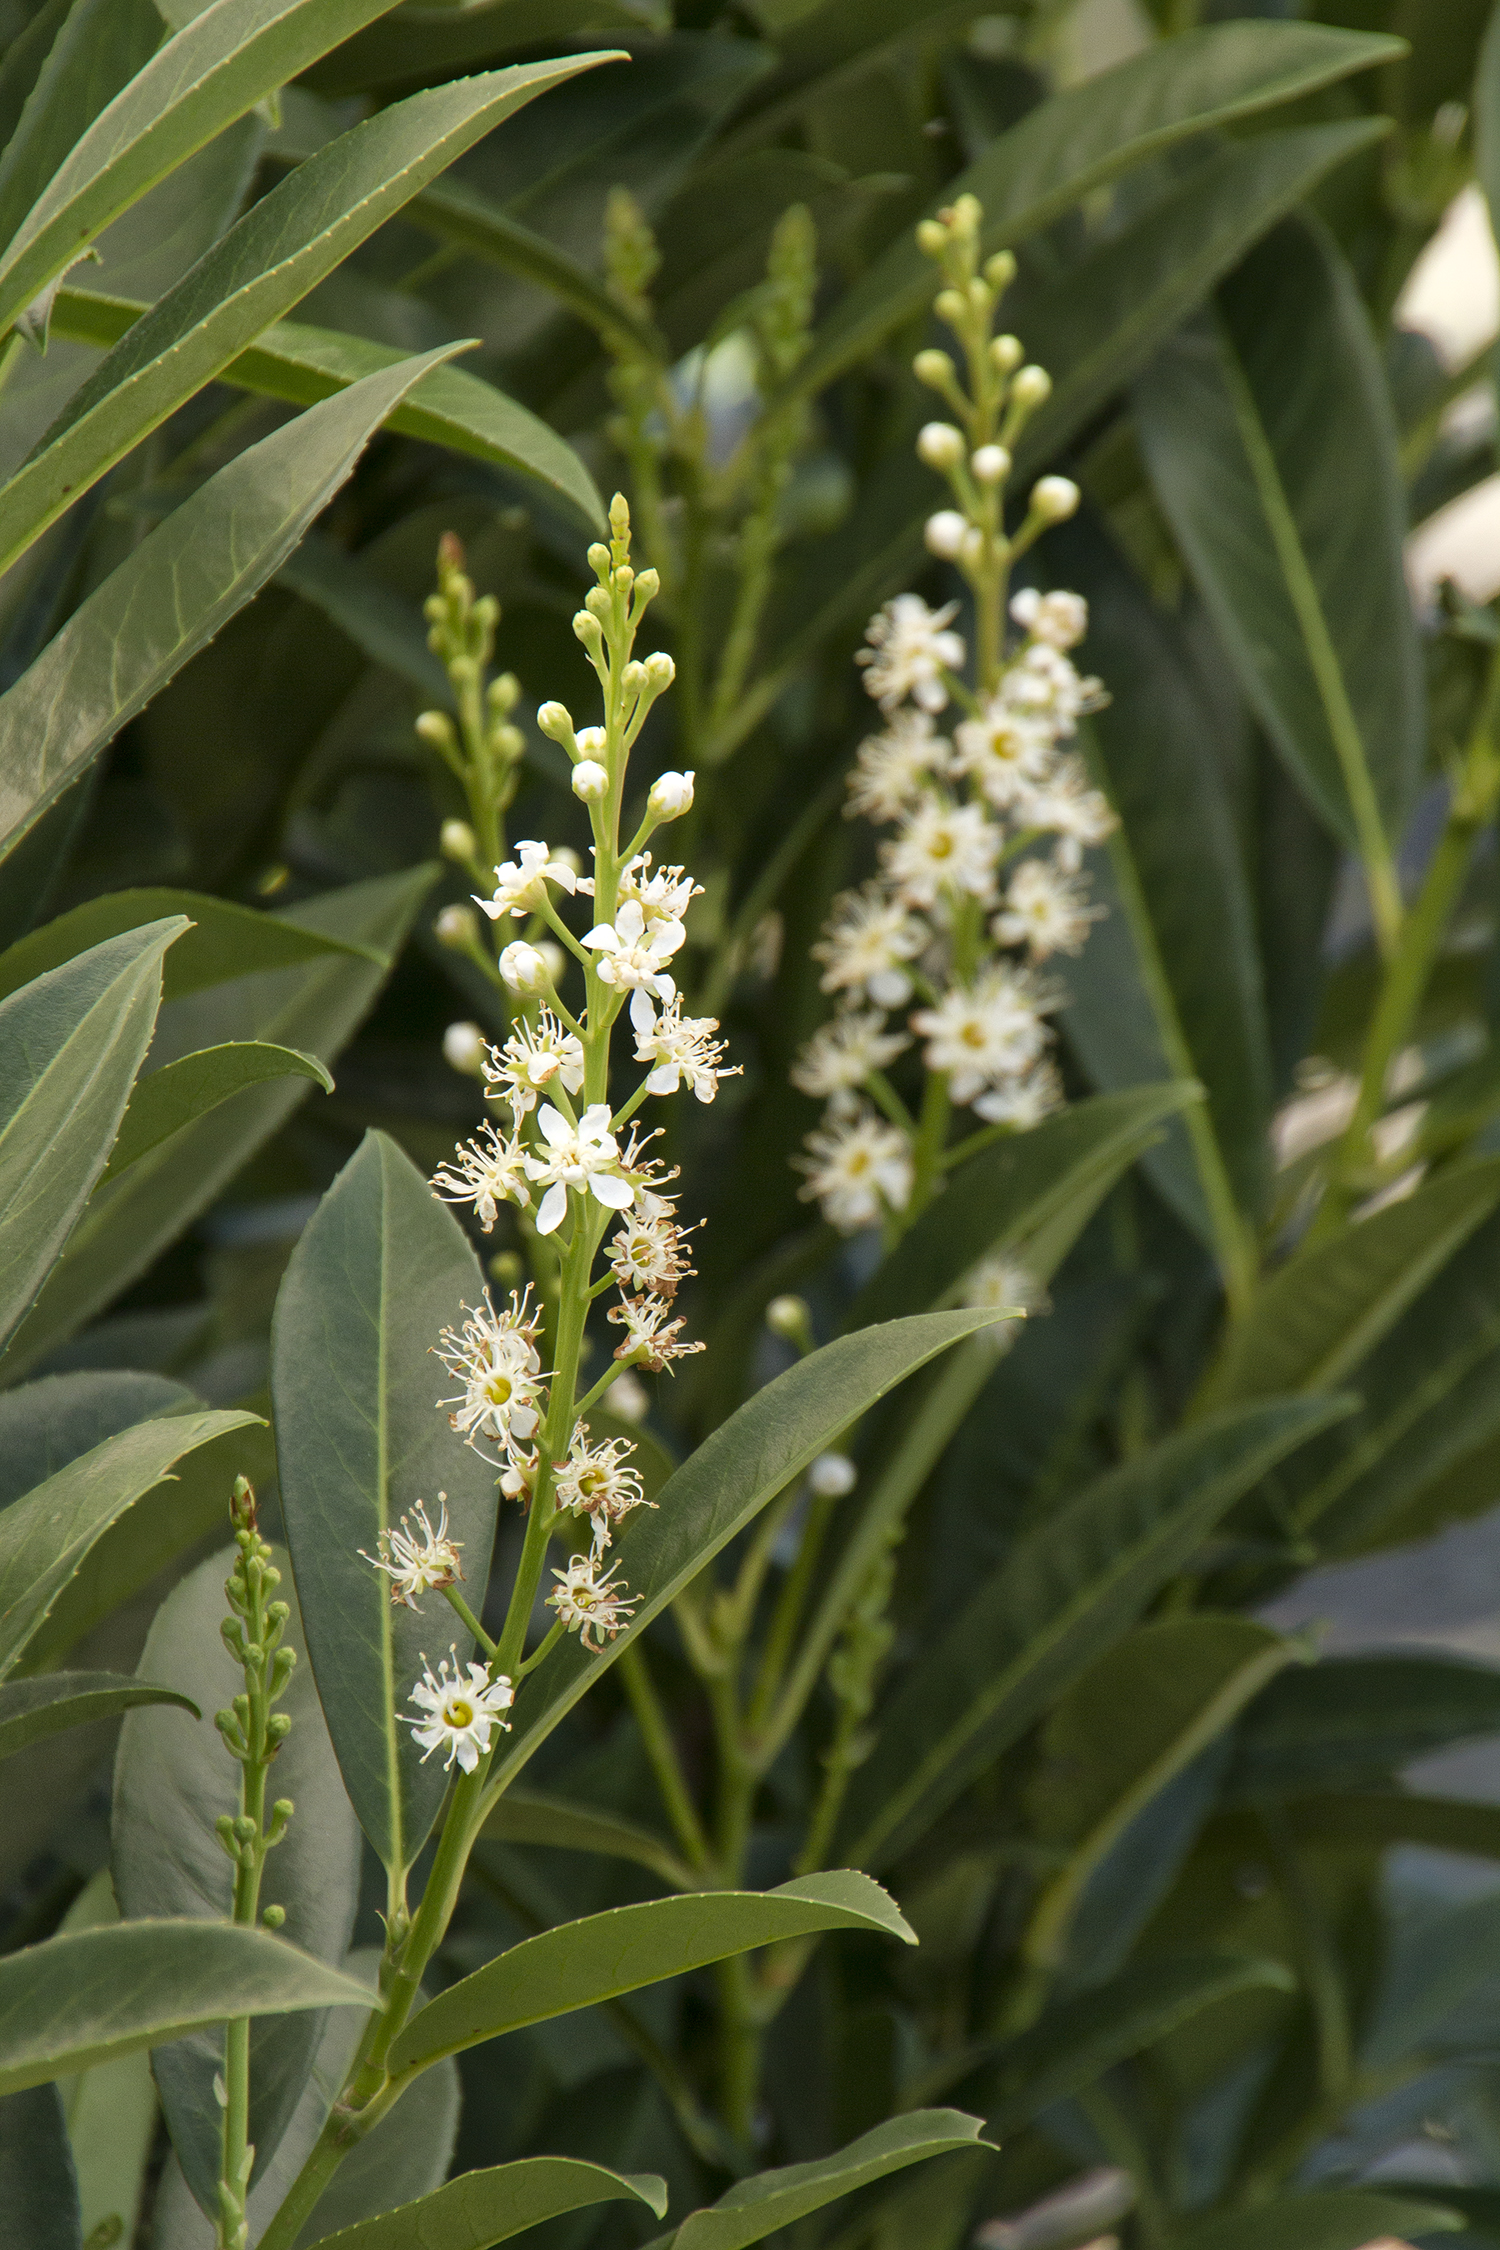 Cherry Laurel | Carolina Laurel Cherry Hedge | Skip Laurel Growth Rate